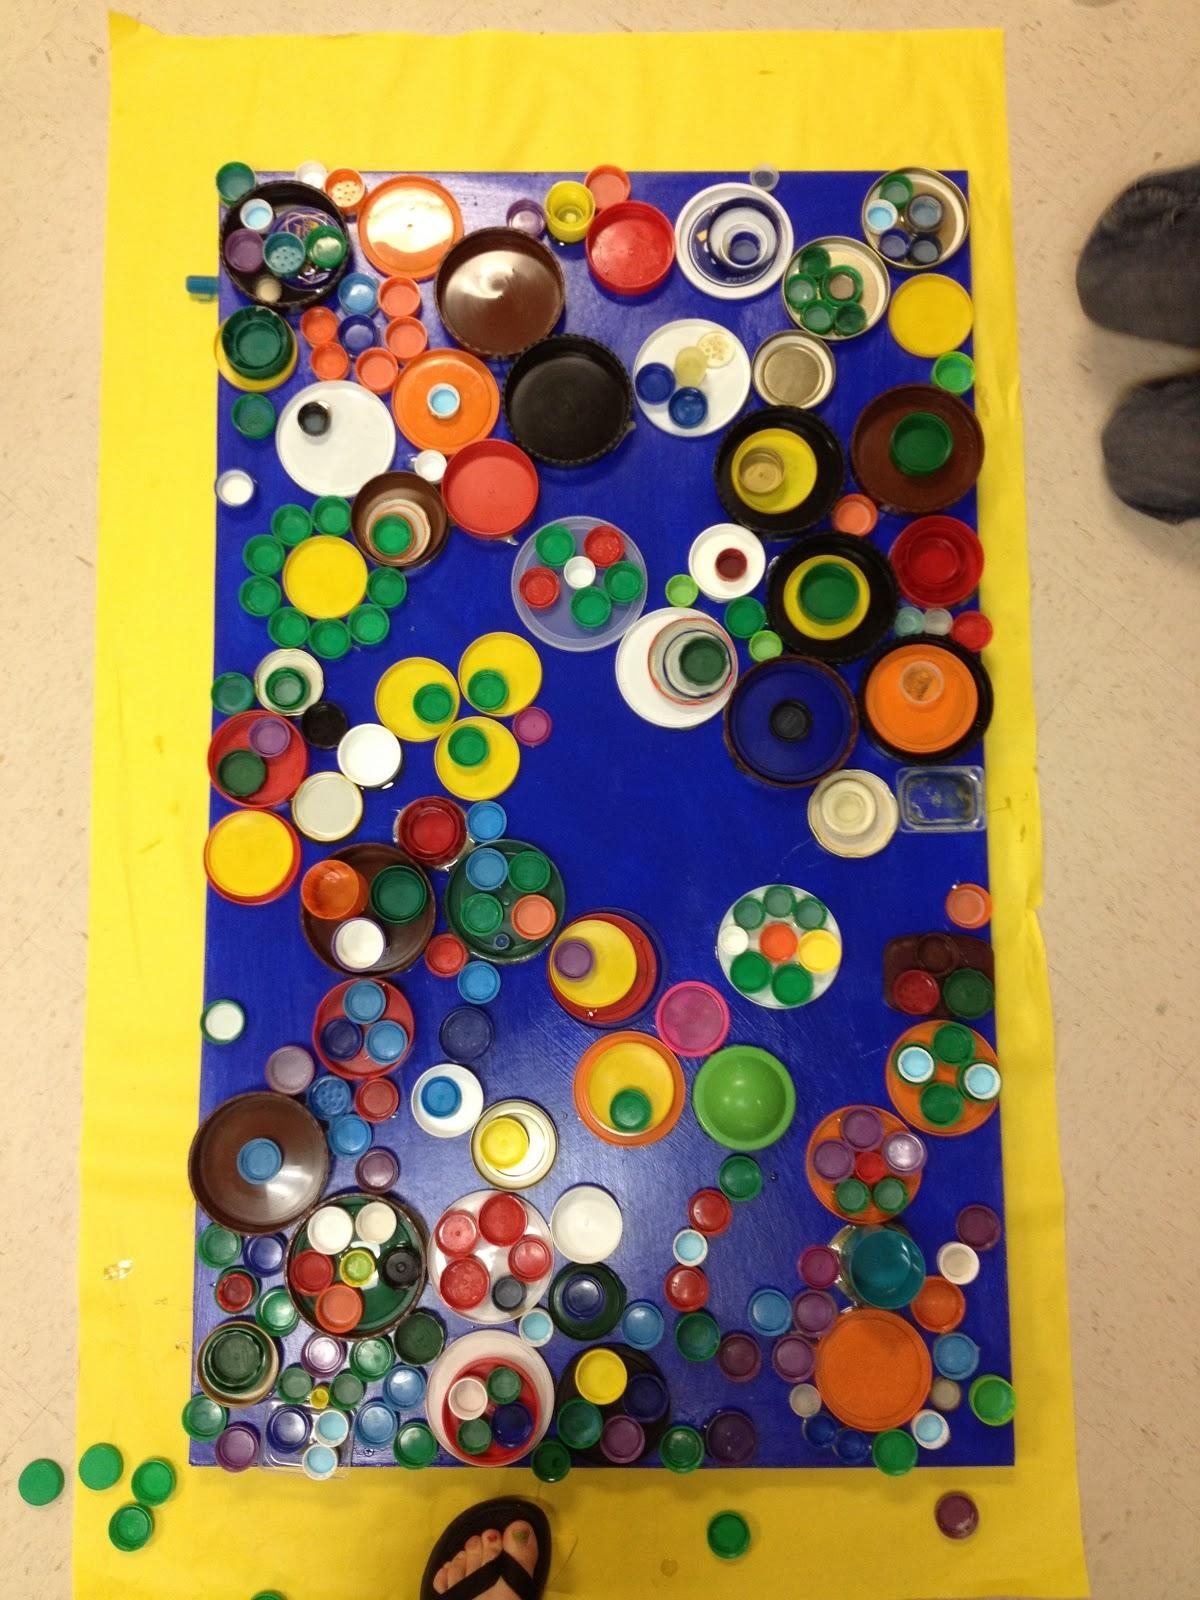 Candice Ashment Art: Reduce*reuse*recycle Bottle Lids Wall Art Inside Recycled Wall Art (Image 5 of 20)